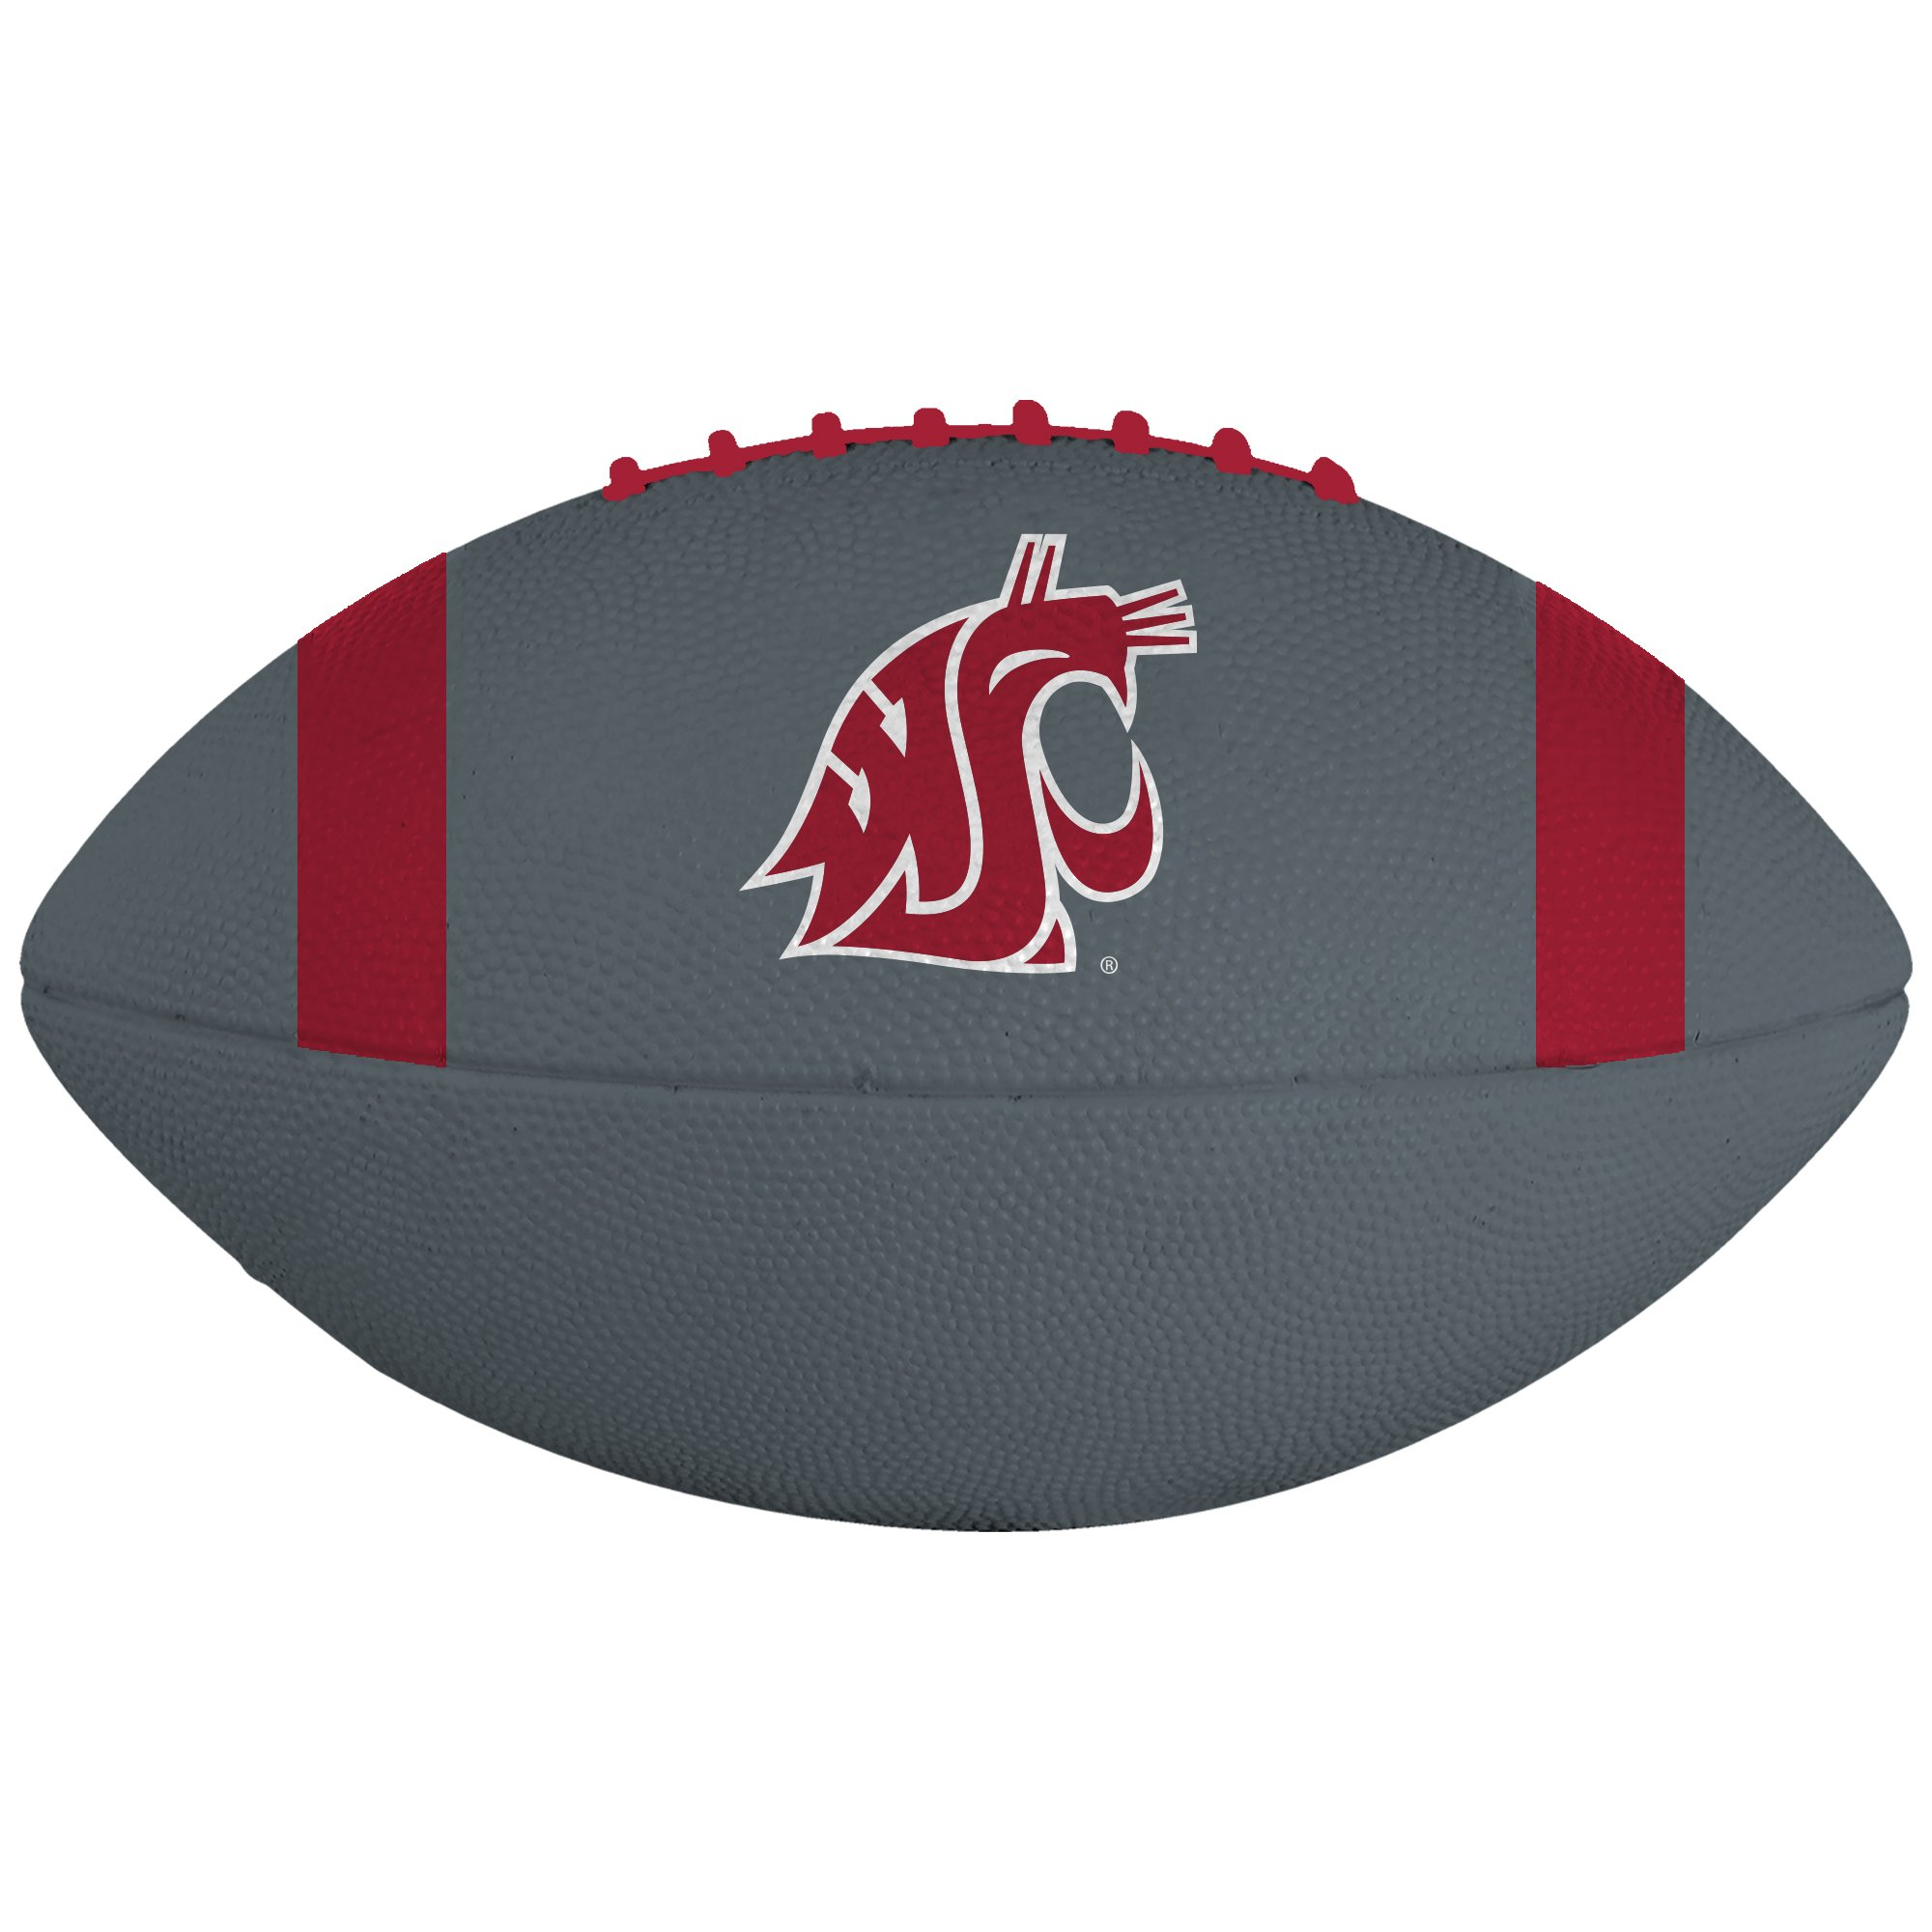 Grey WSU Small Rubber Football